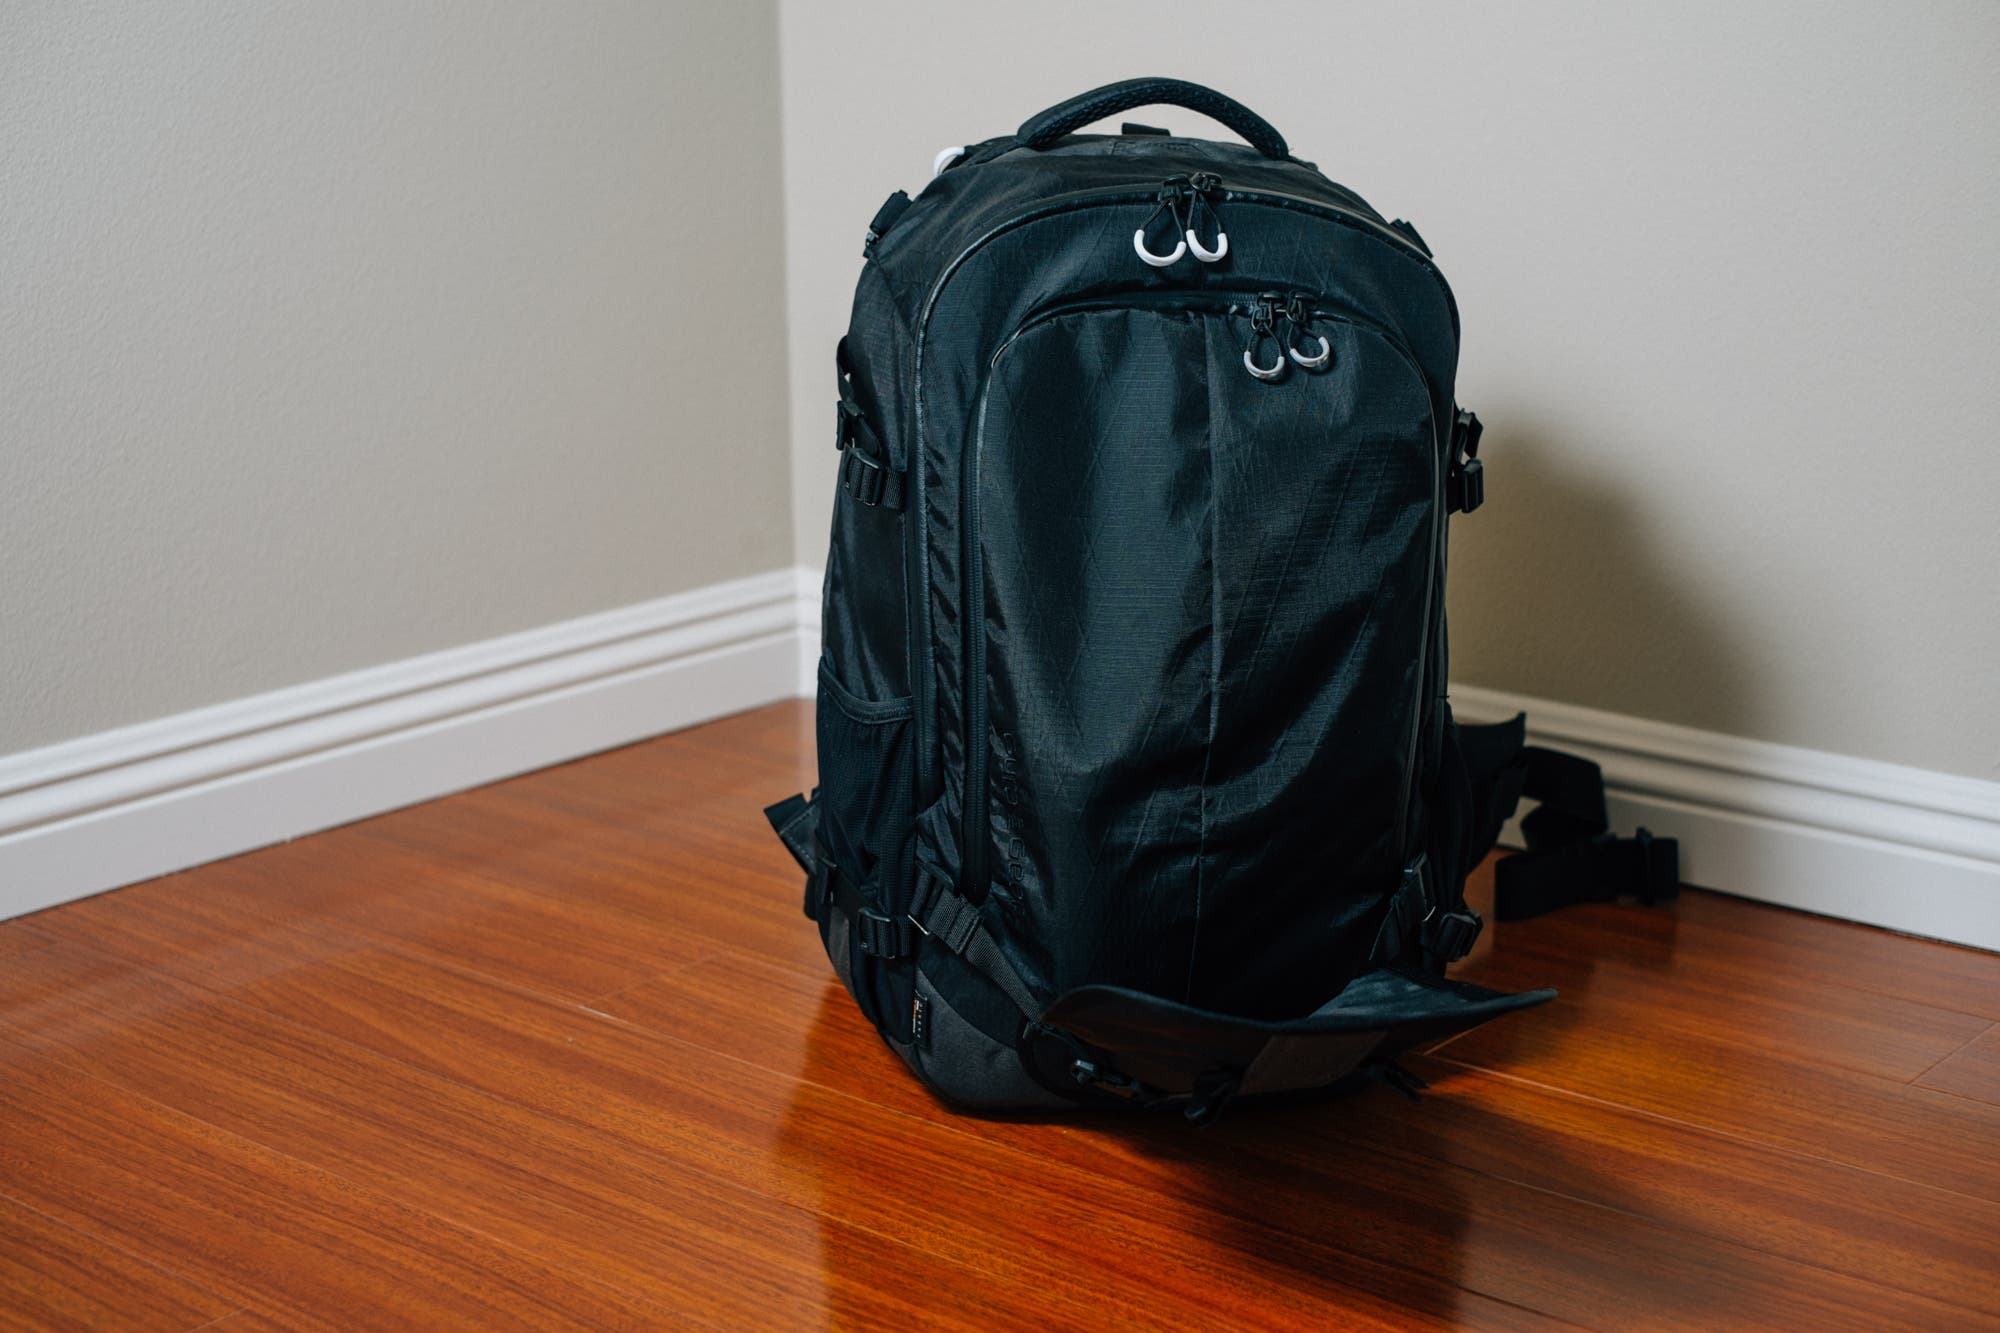 Review: Gura Gear Uinta Adventure Pack